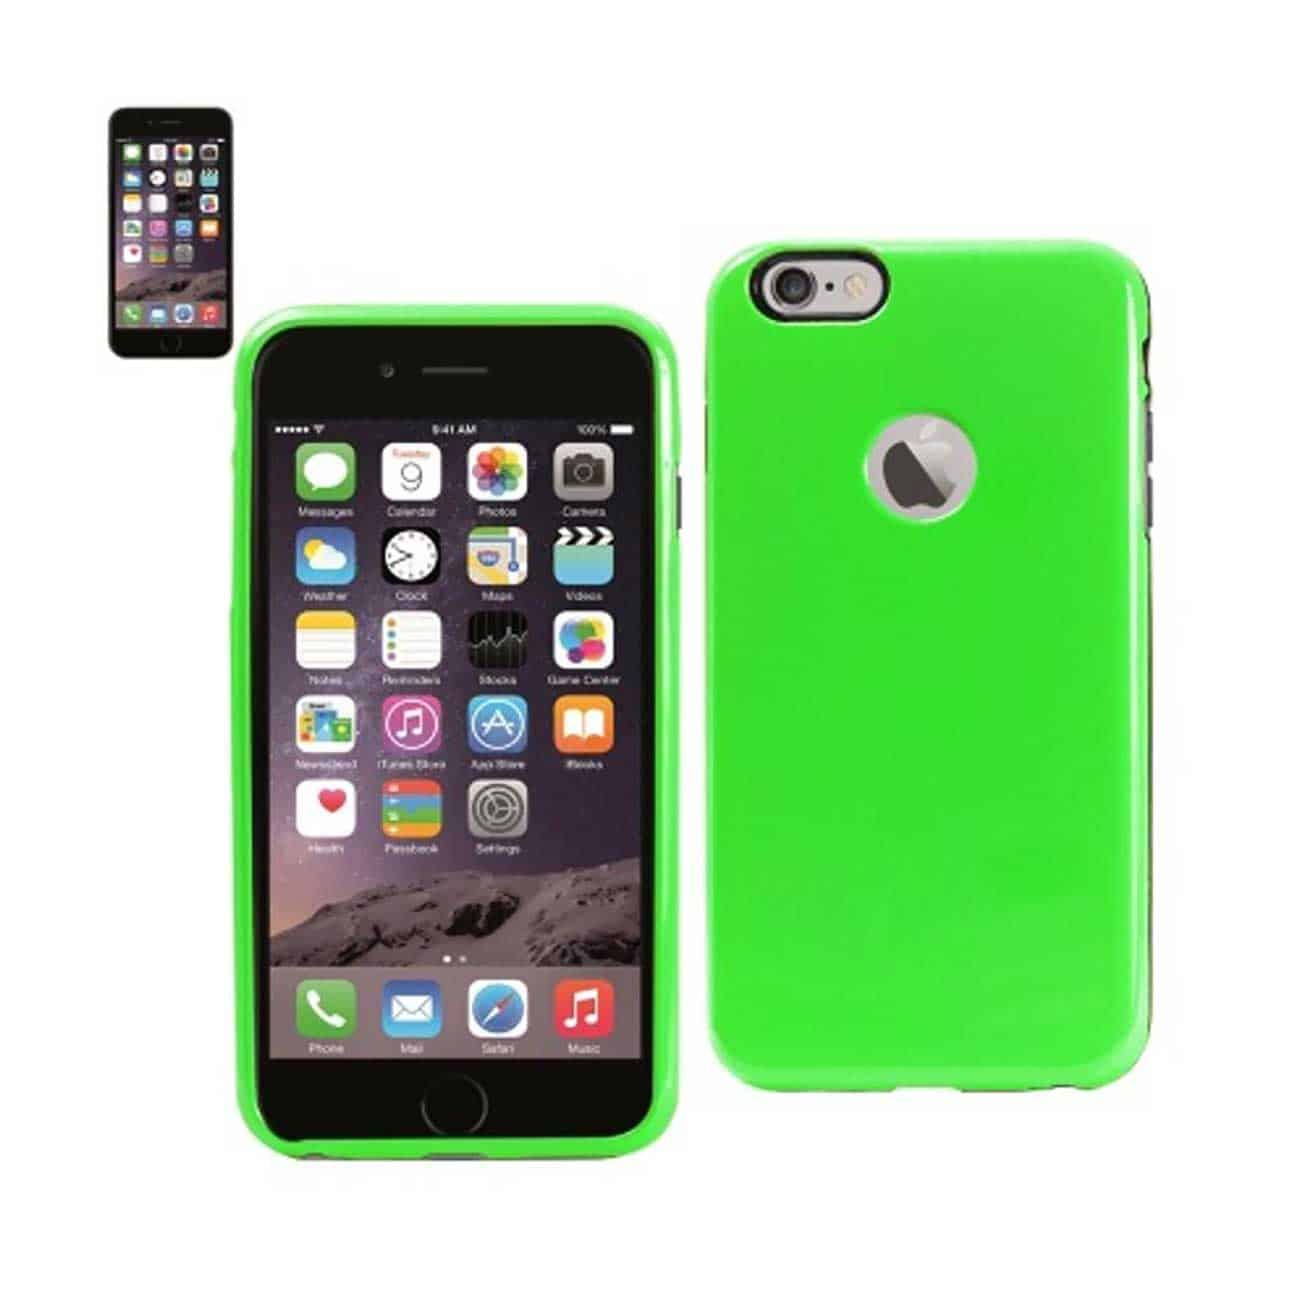 IPHONE 6 PLUS SLIM ARMOR CANDY SHIELD CASE IN GREEN